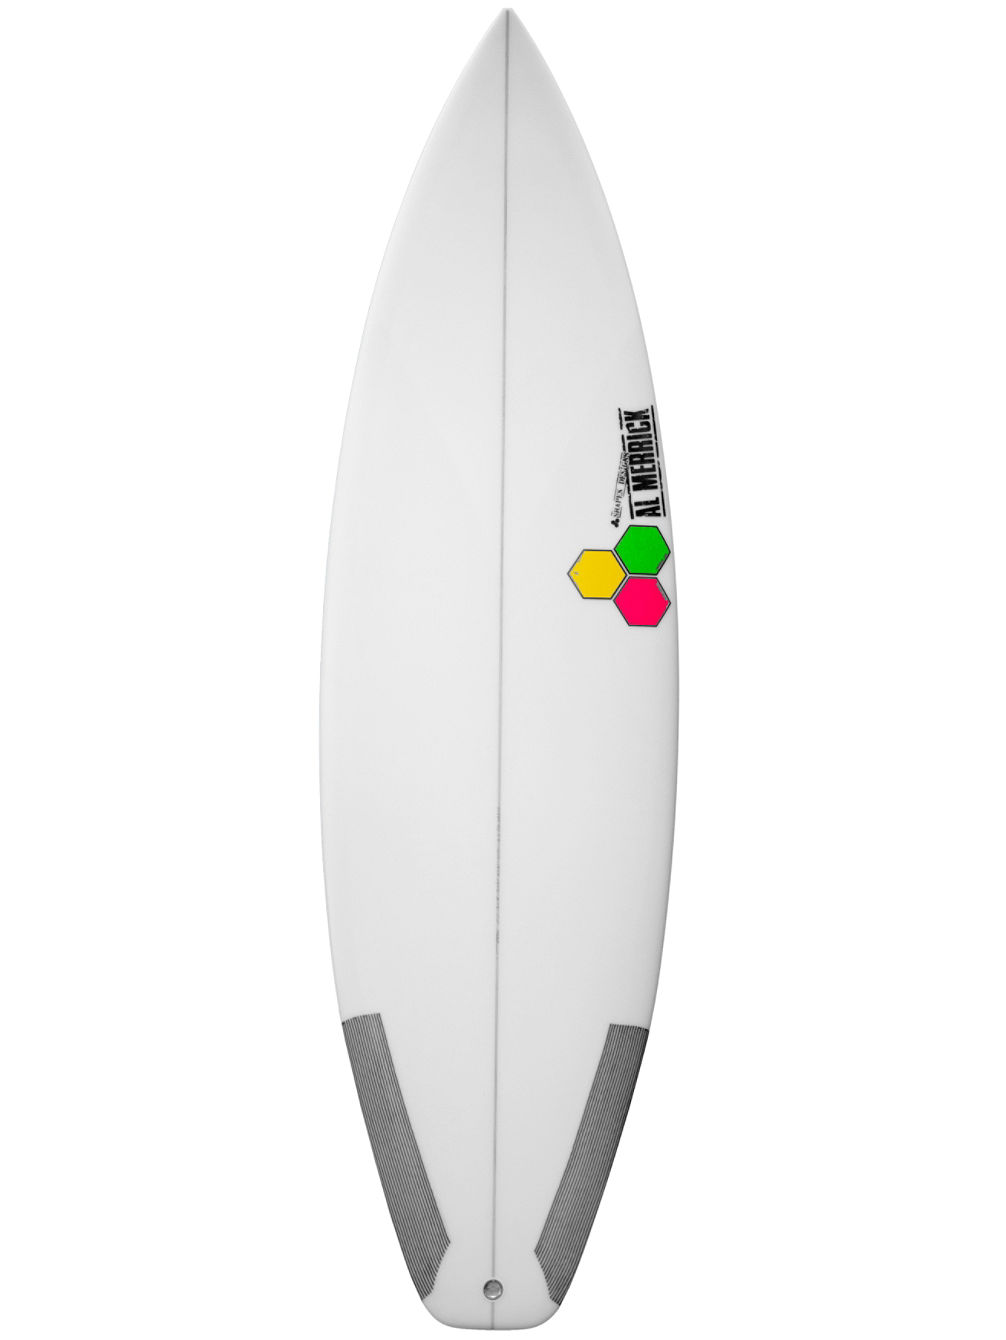 "New Flyer 5'7"" Surfboard"